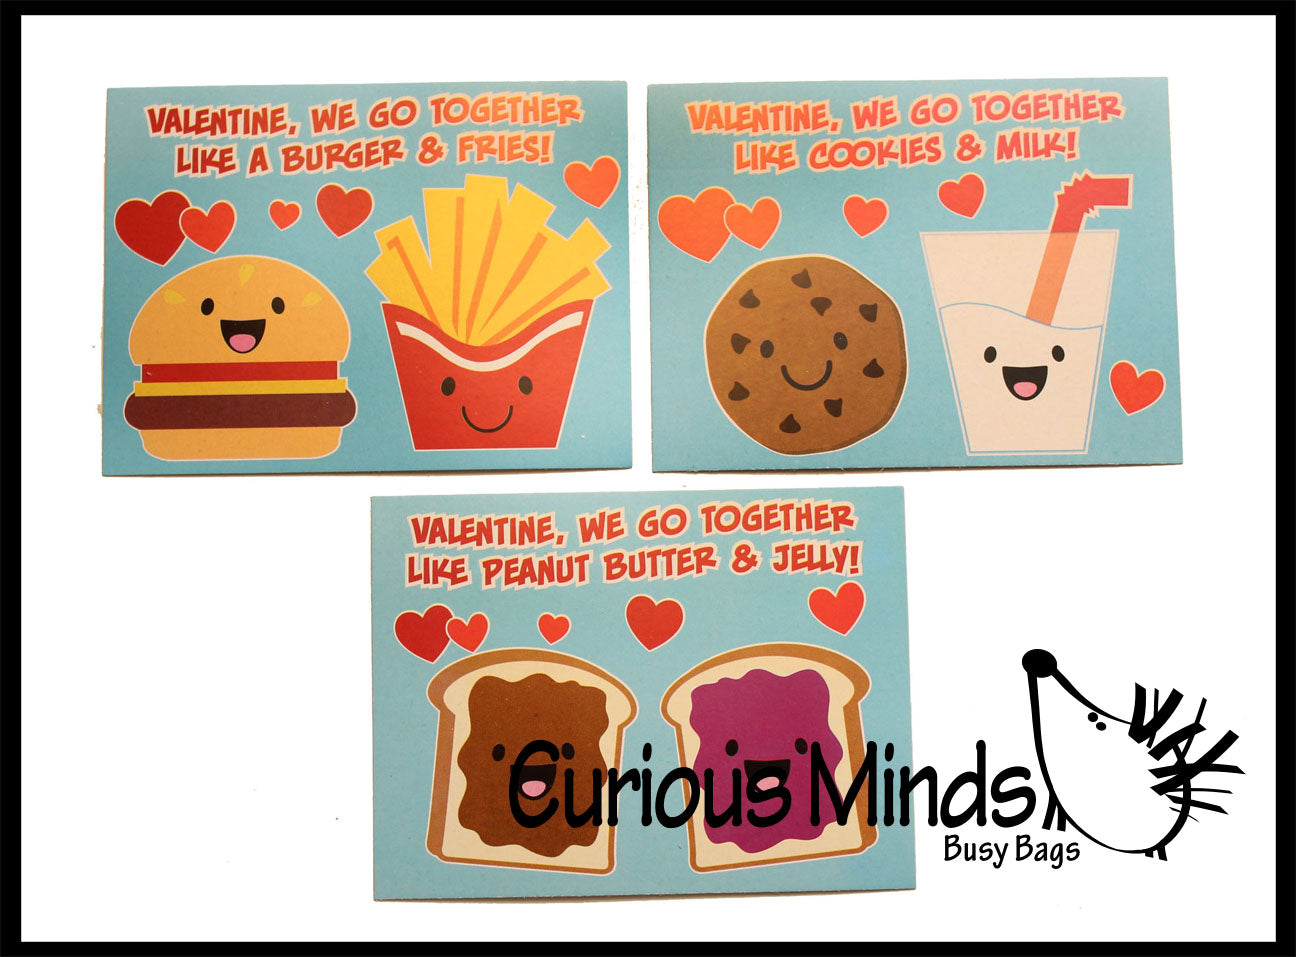 We Go Together Adorable Valentine's Day Cards for Kids - Cute Valentine for Classroom Exchange - Twins